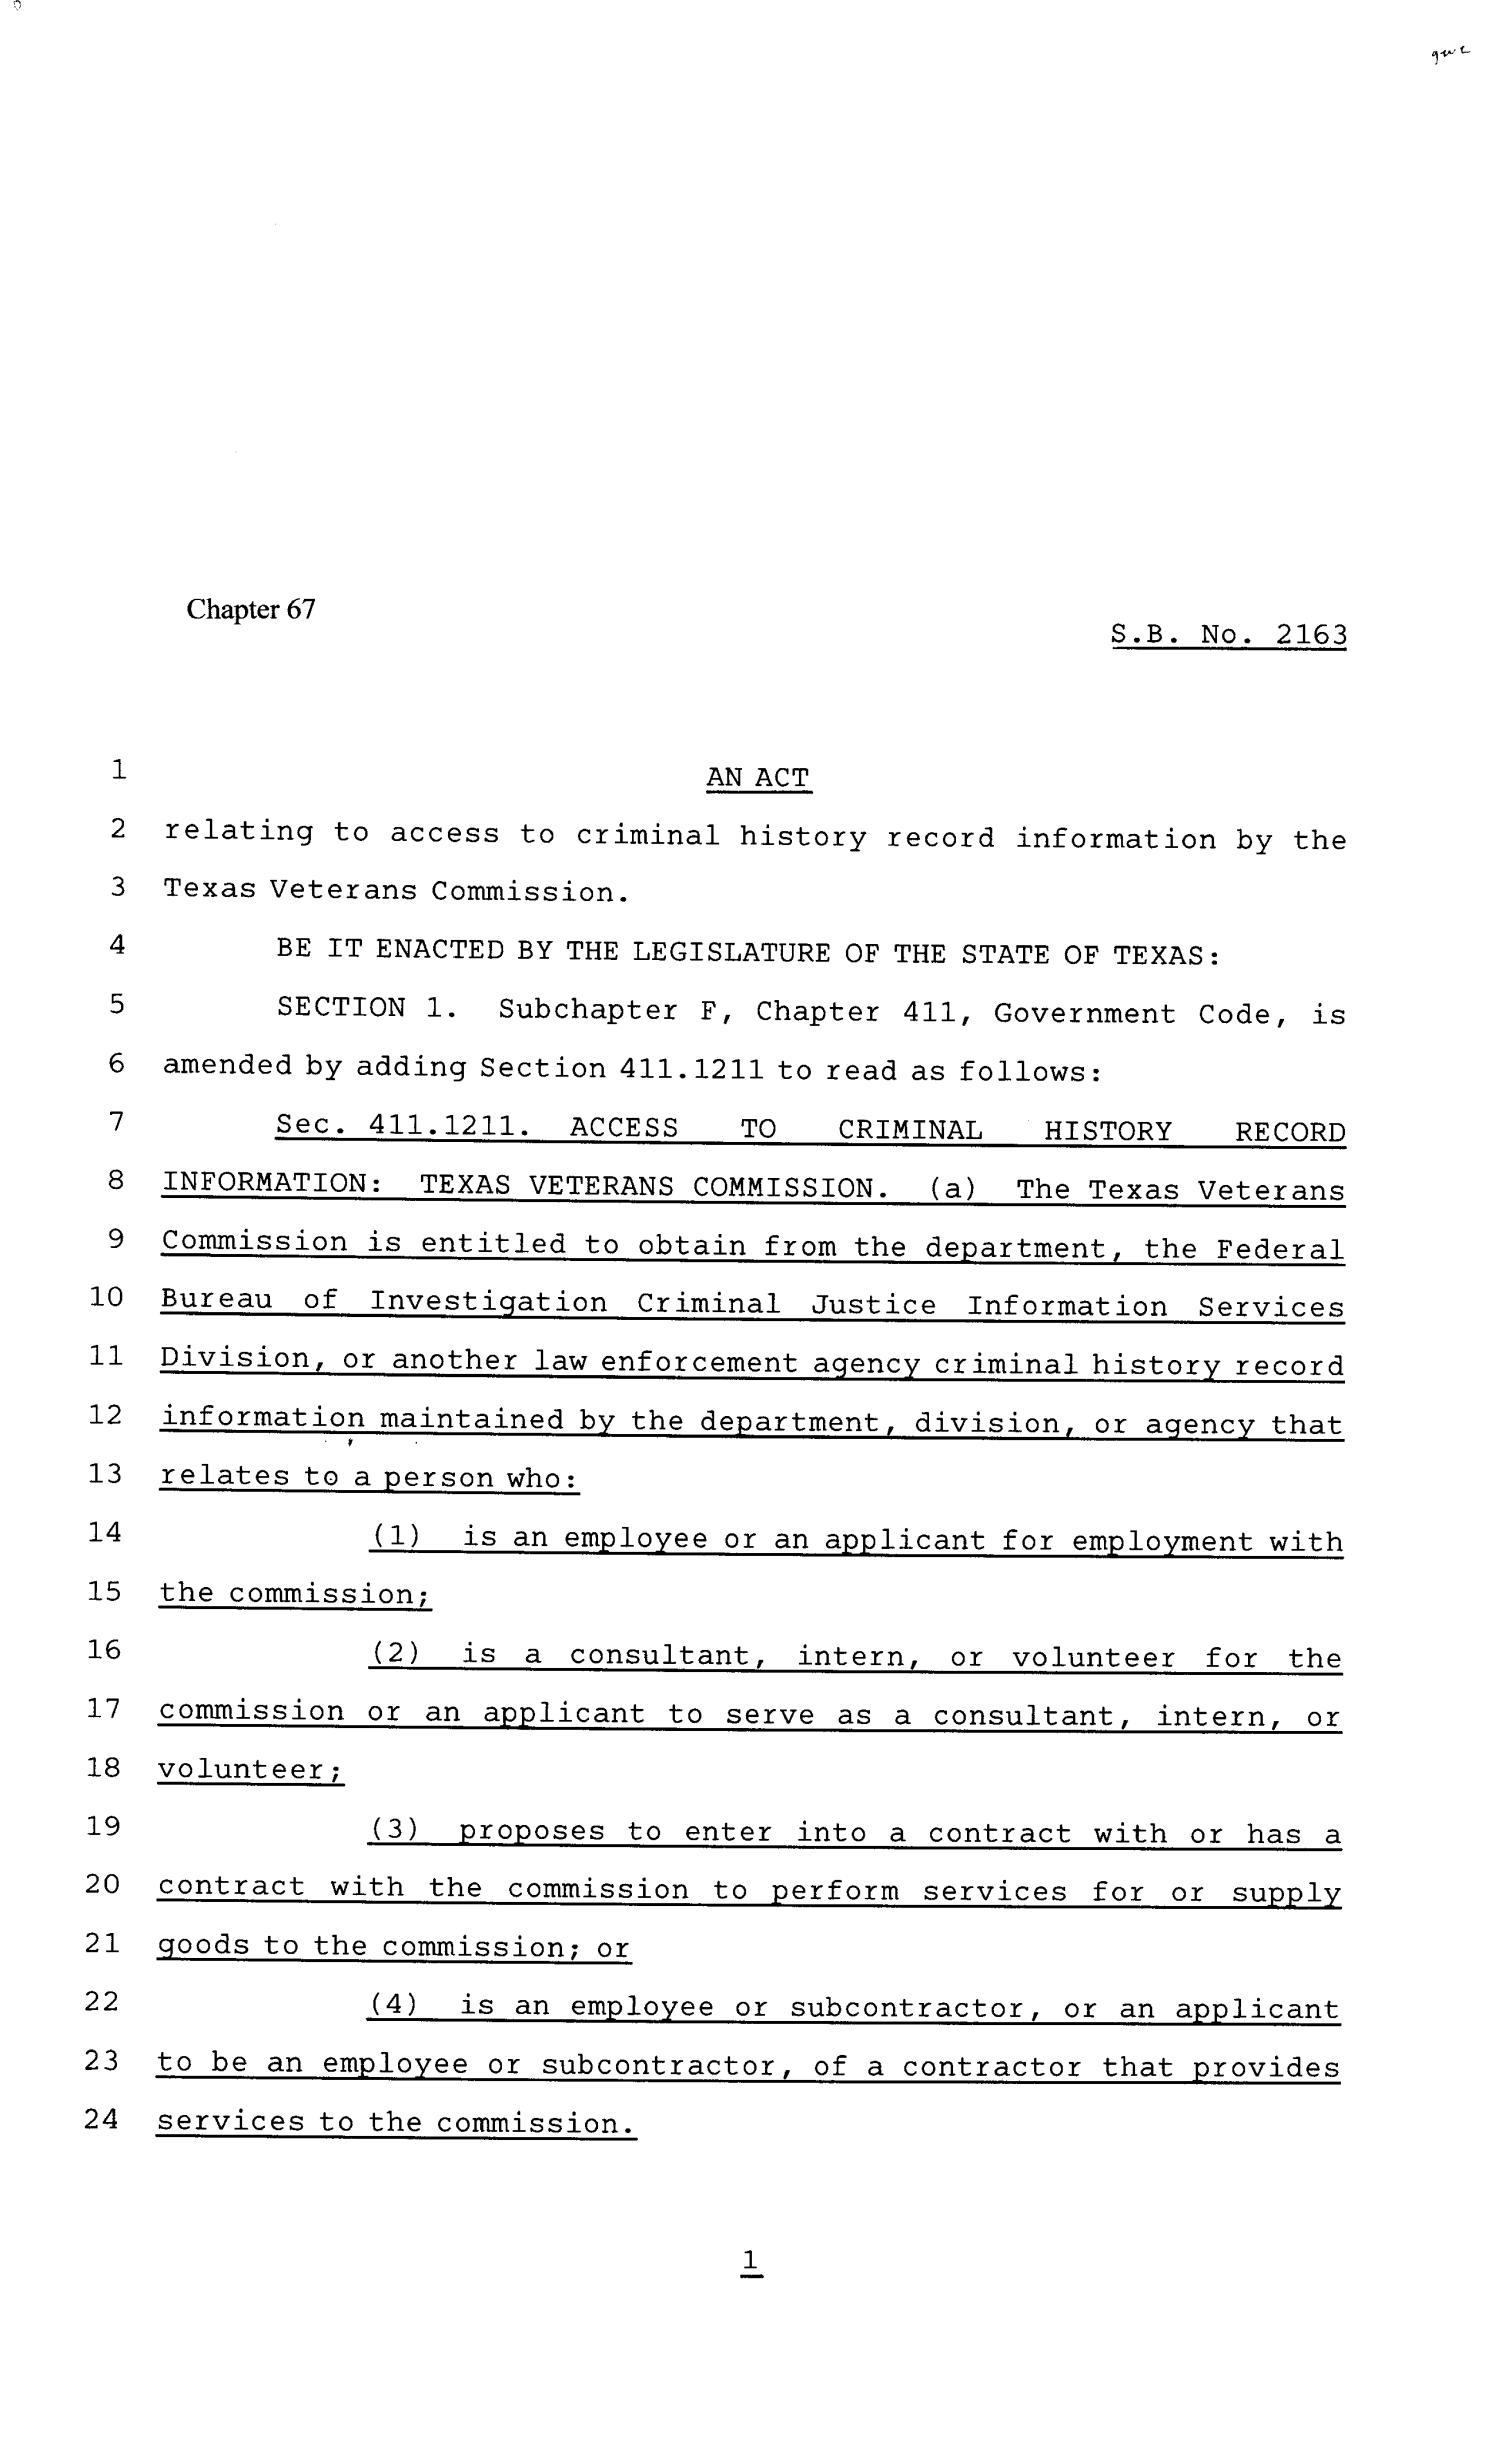 81st Texas Legislature, Senate Bill 2163, Chapter 67                                                                                                      [Sequence #]: 1 of 3